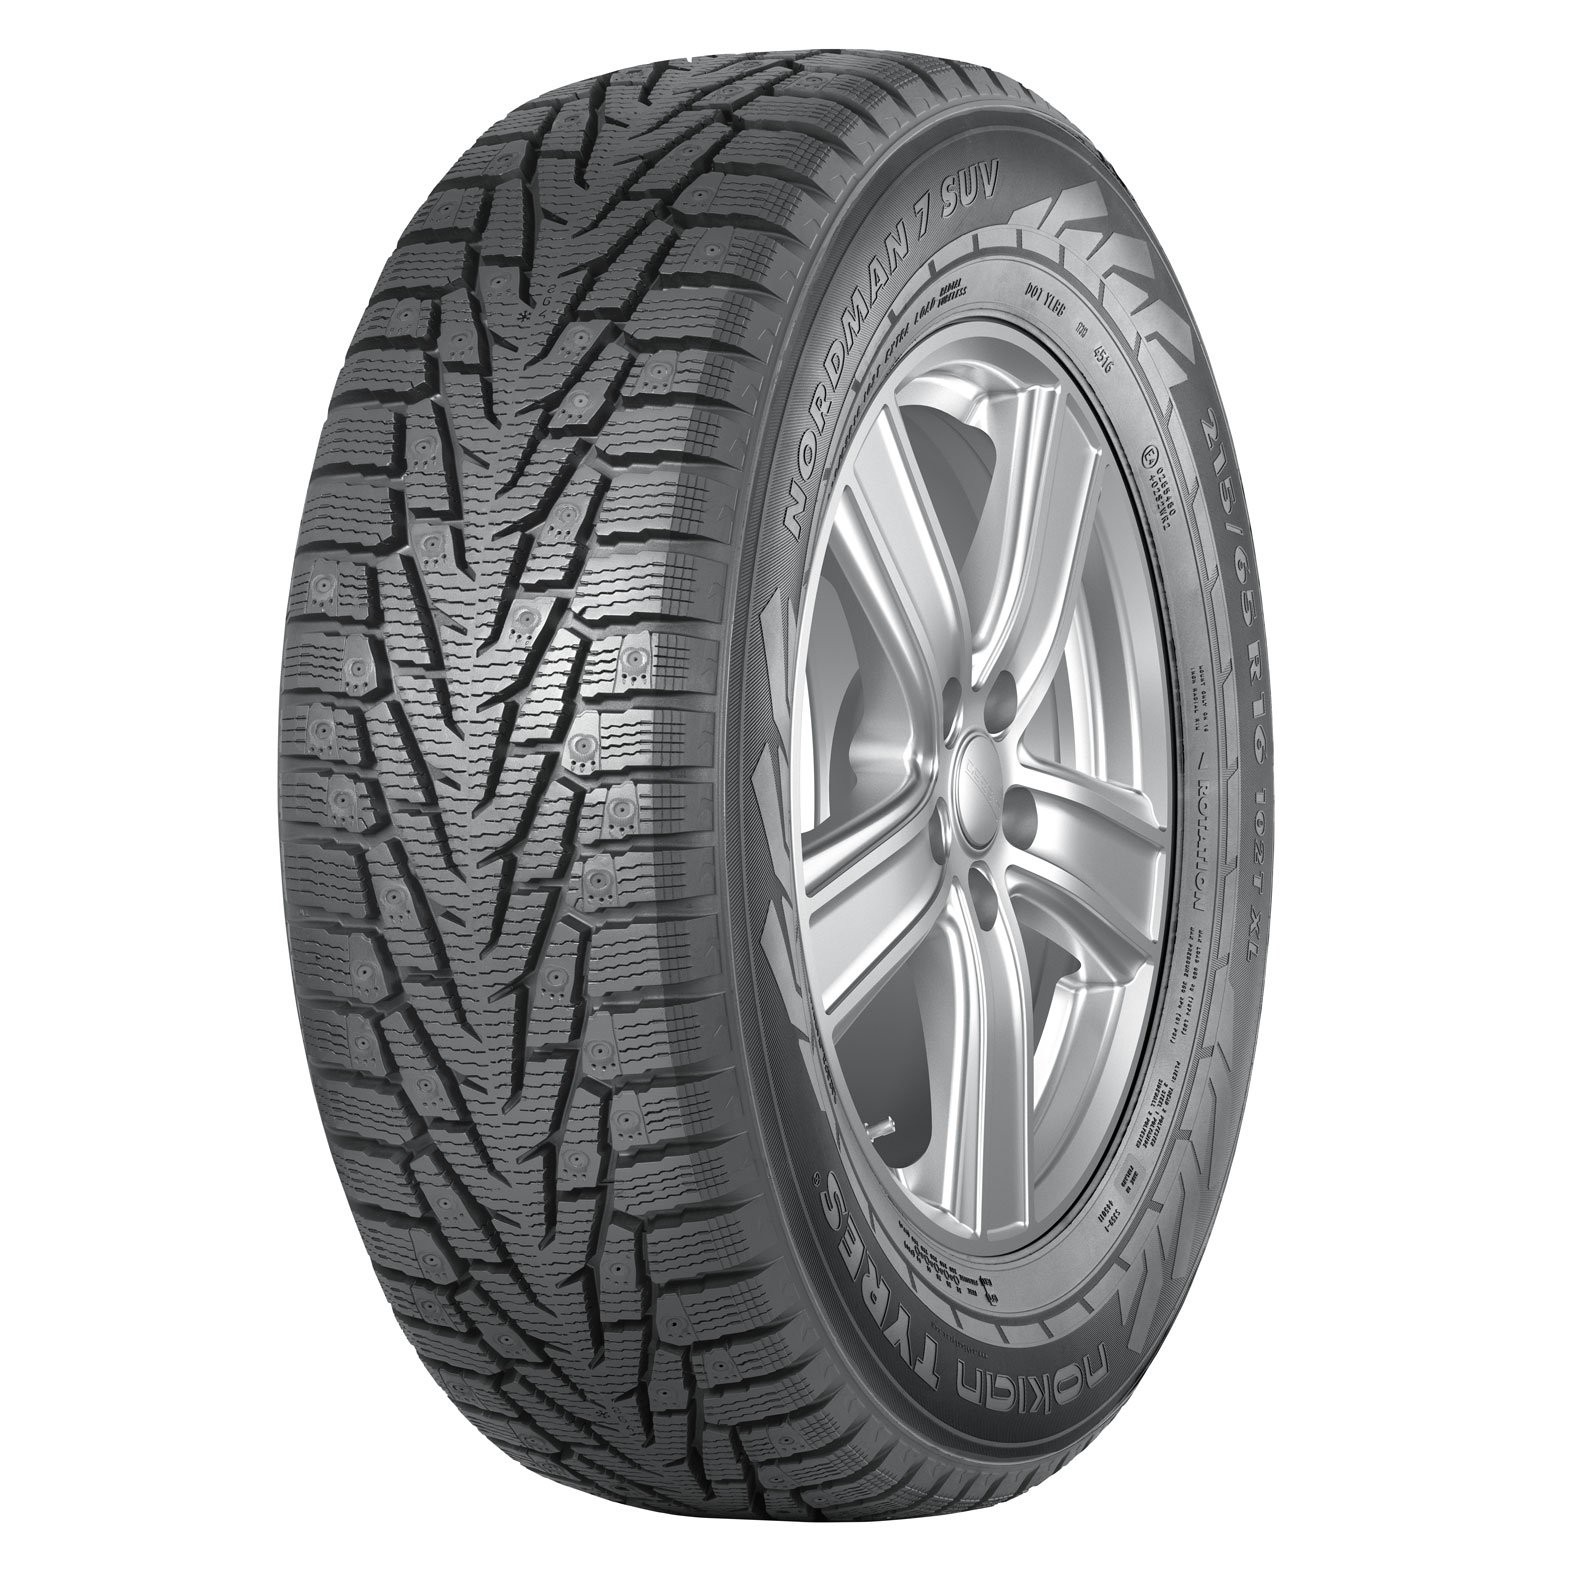 245/75R16 111T Nokian Nordman 7 SUV Non-Studded Winter Tire